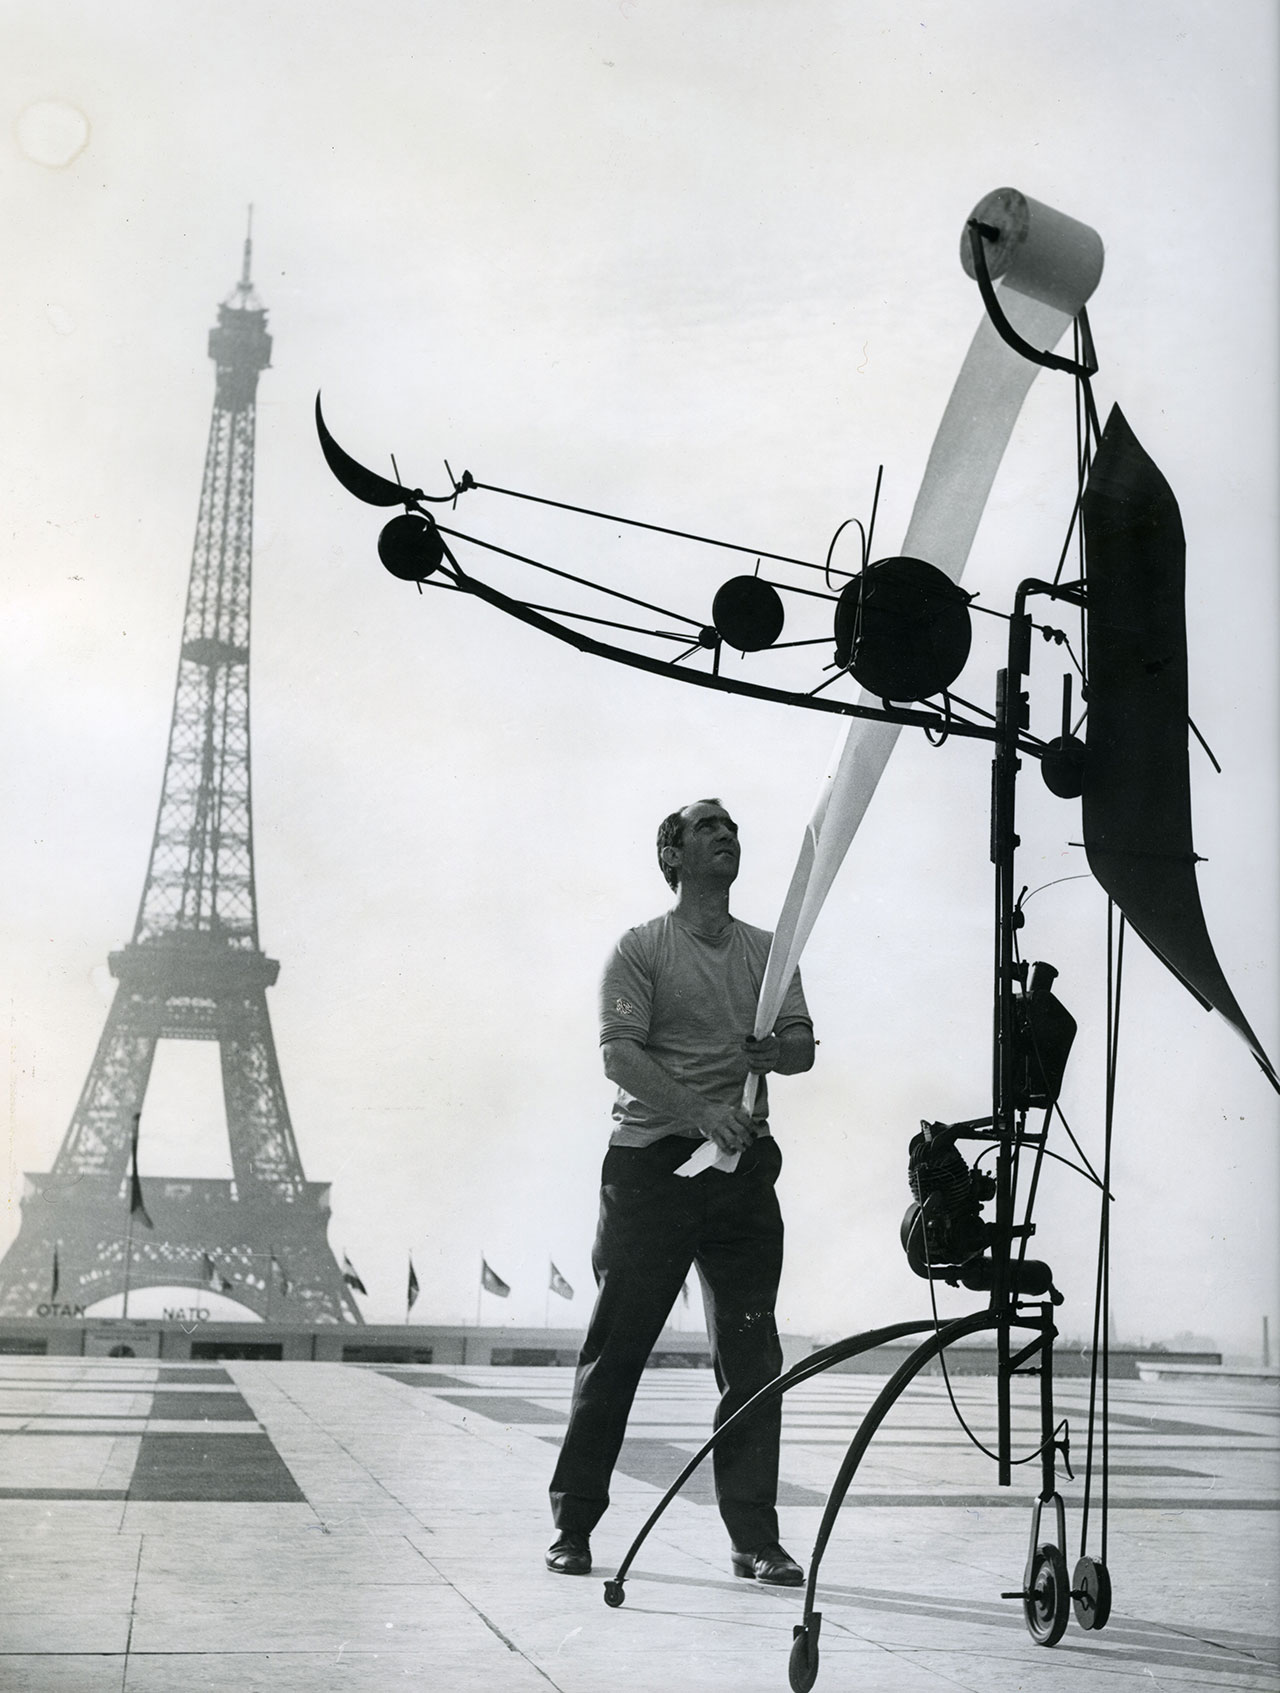 Jean Tinguely with Méta-Matic No. 17 in front of the Eiffel Tower, 1959. Photo by John R. Van.